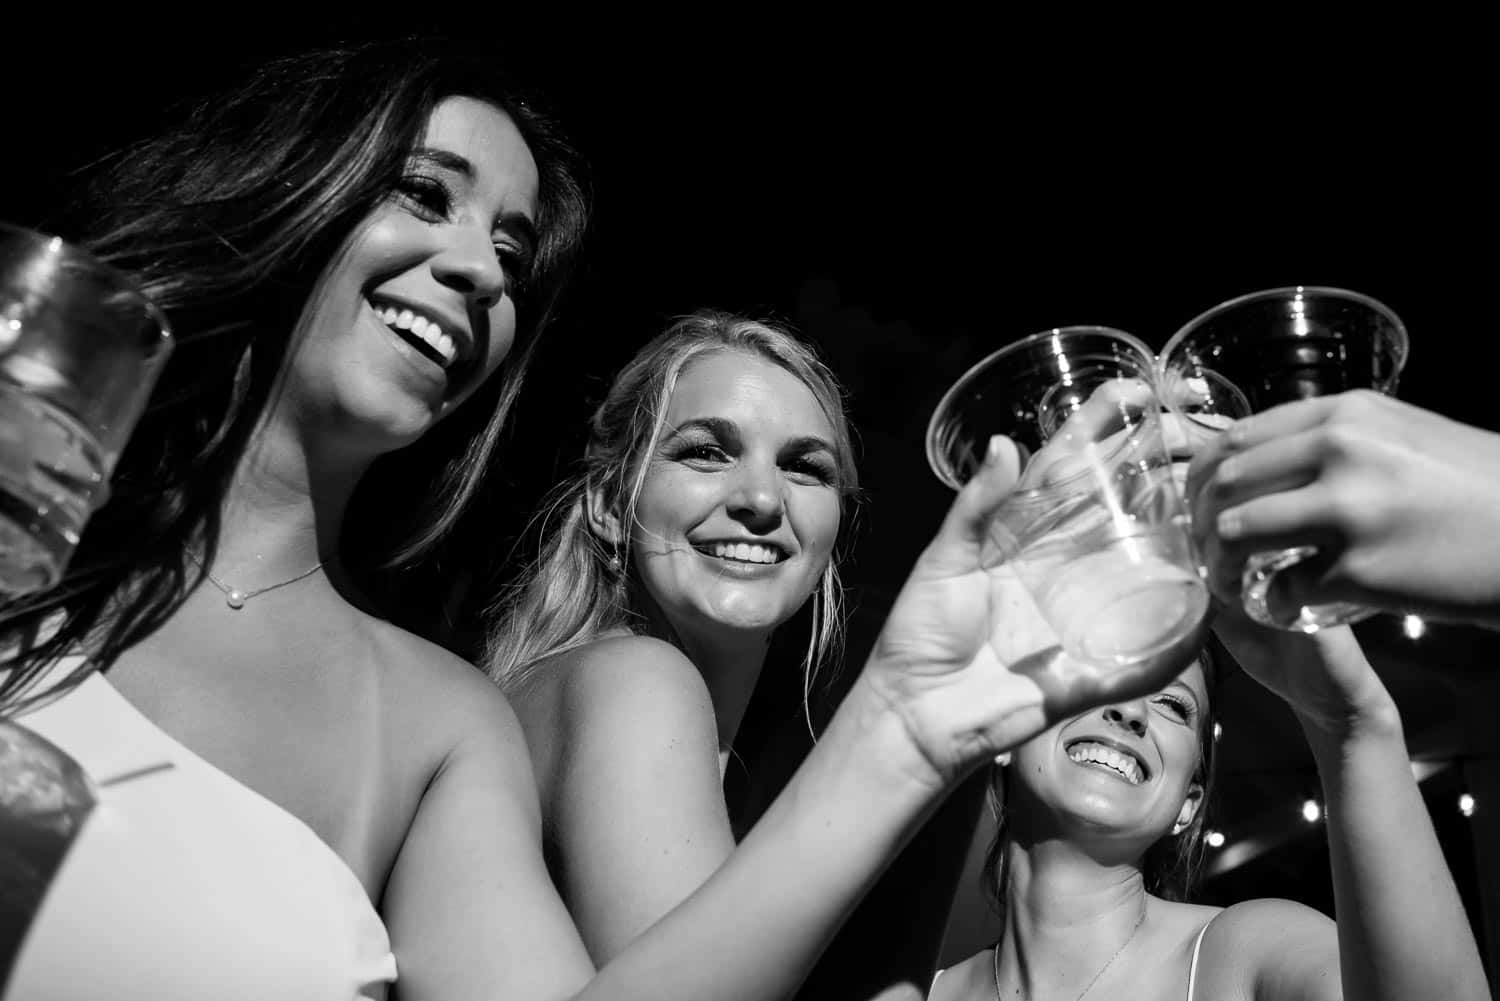 BW Girls making a toast